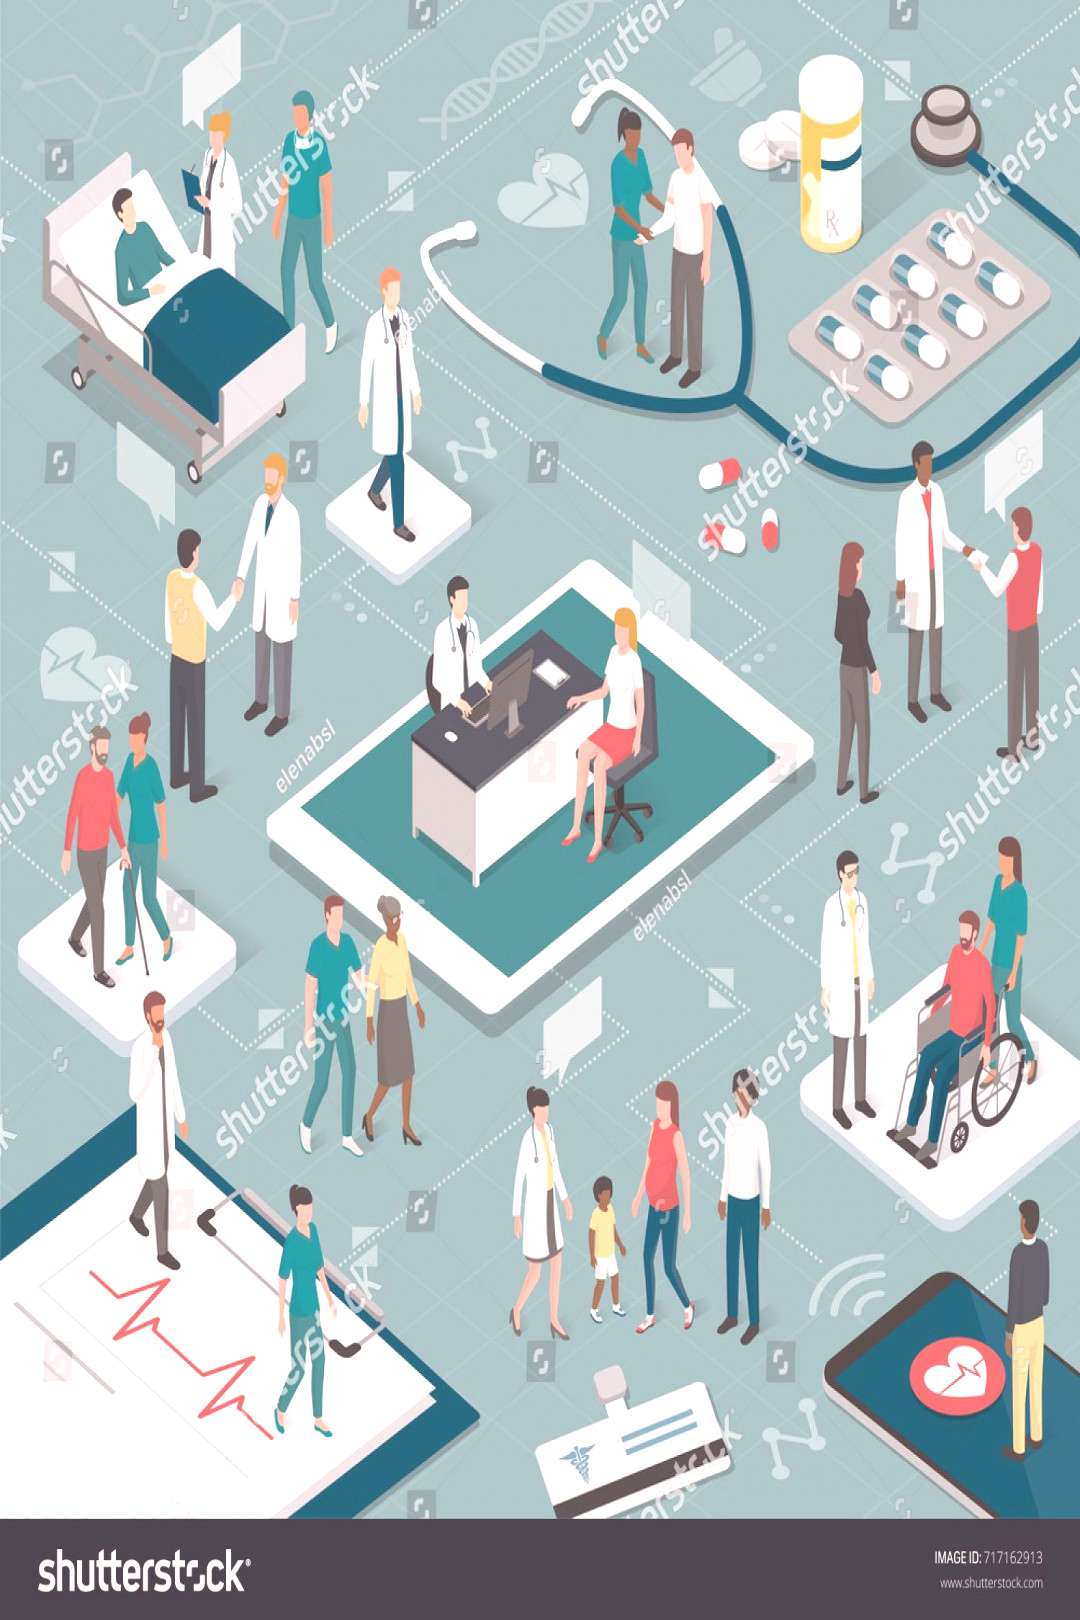 Doctors and nurses taking care of the patients and connecting together online: healthcare and techn